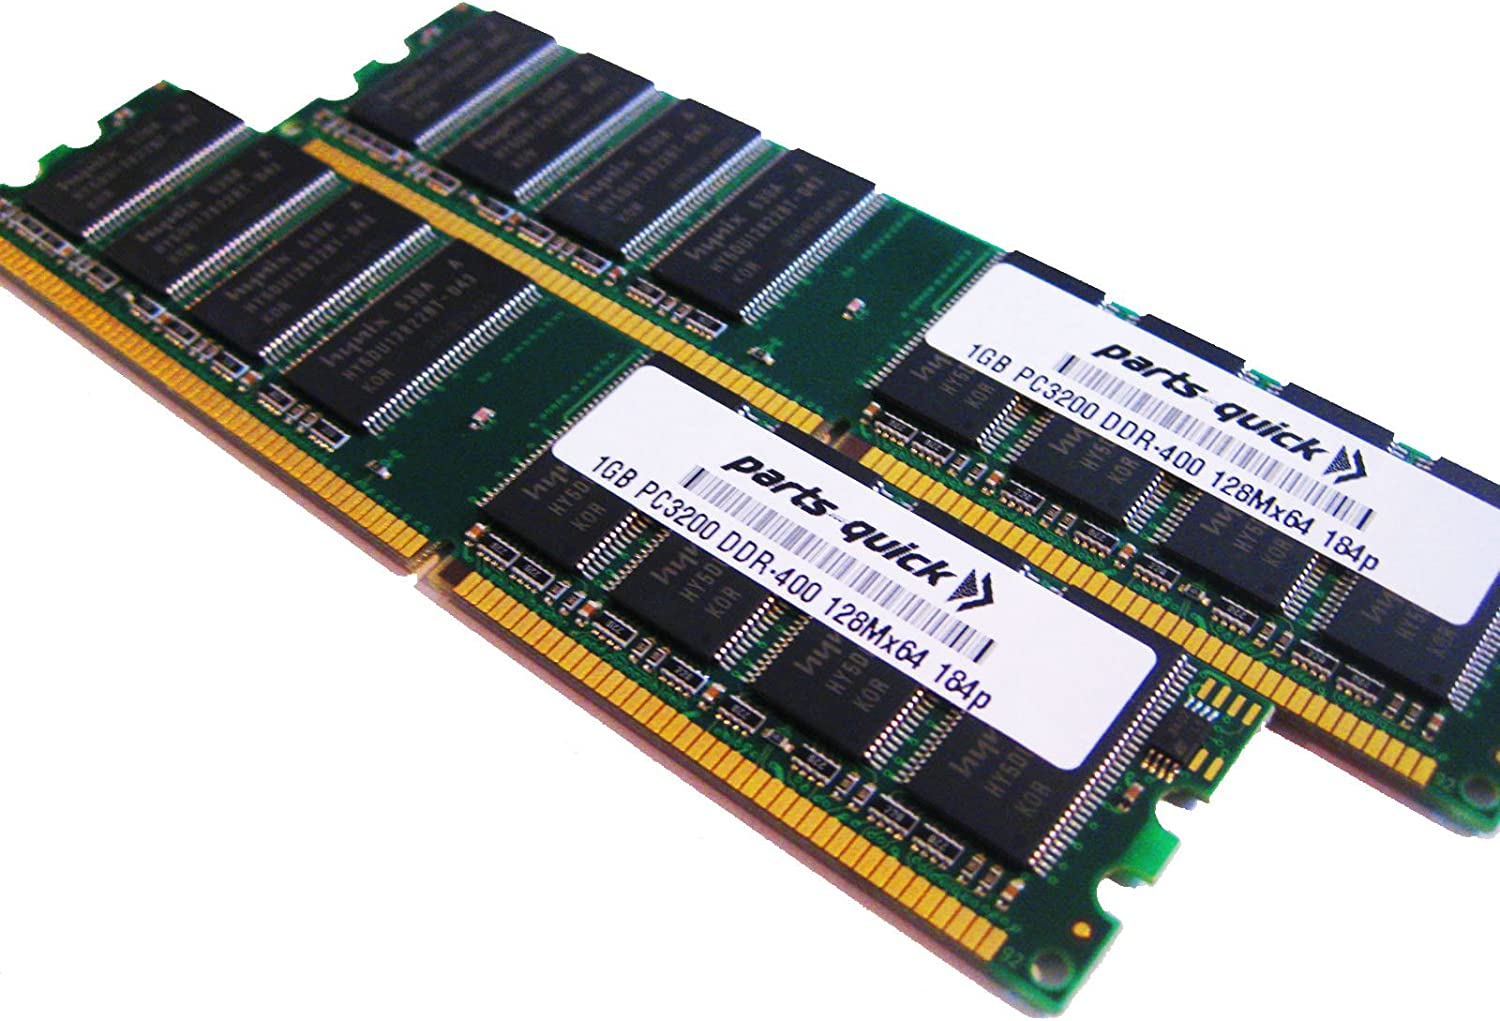 parts-quick 2GB 2 X 1GB PC3200 400MHz 184 pin DDR SDRAM Non-ECC DIMM Desktop Memory for Apple Power Mac G5 1.8GHz Brand